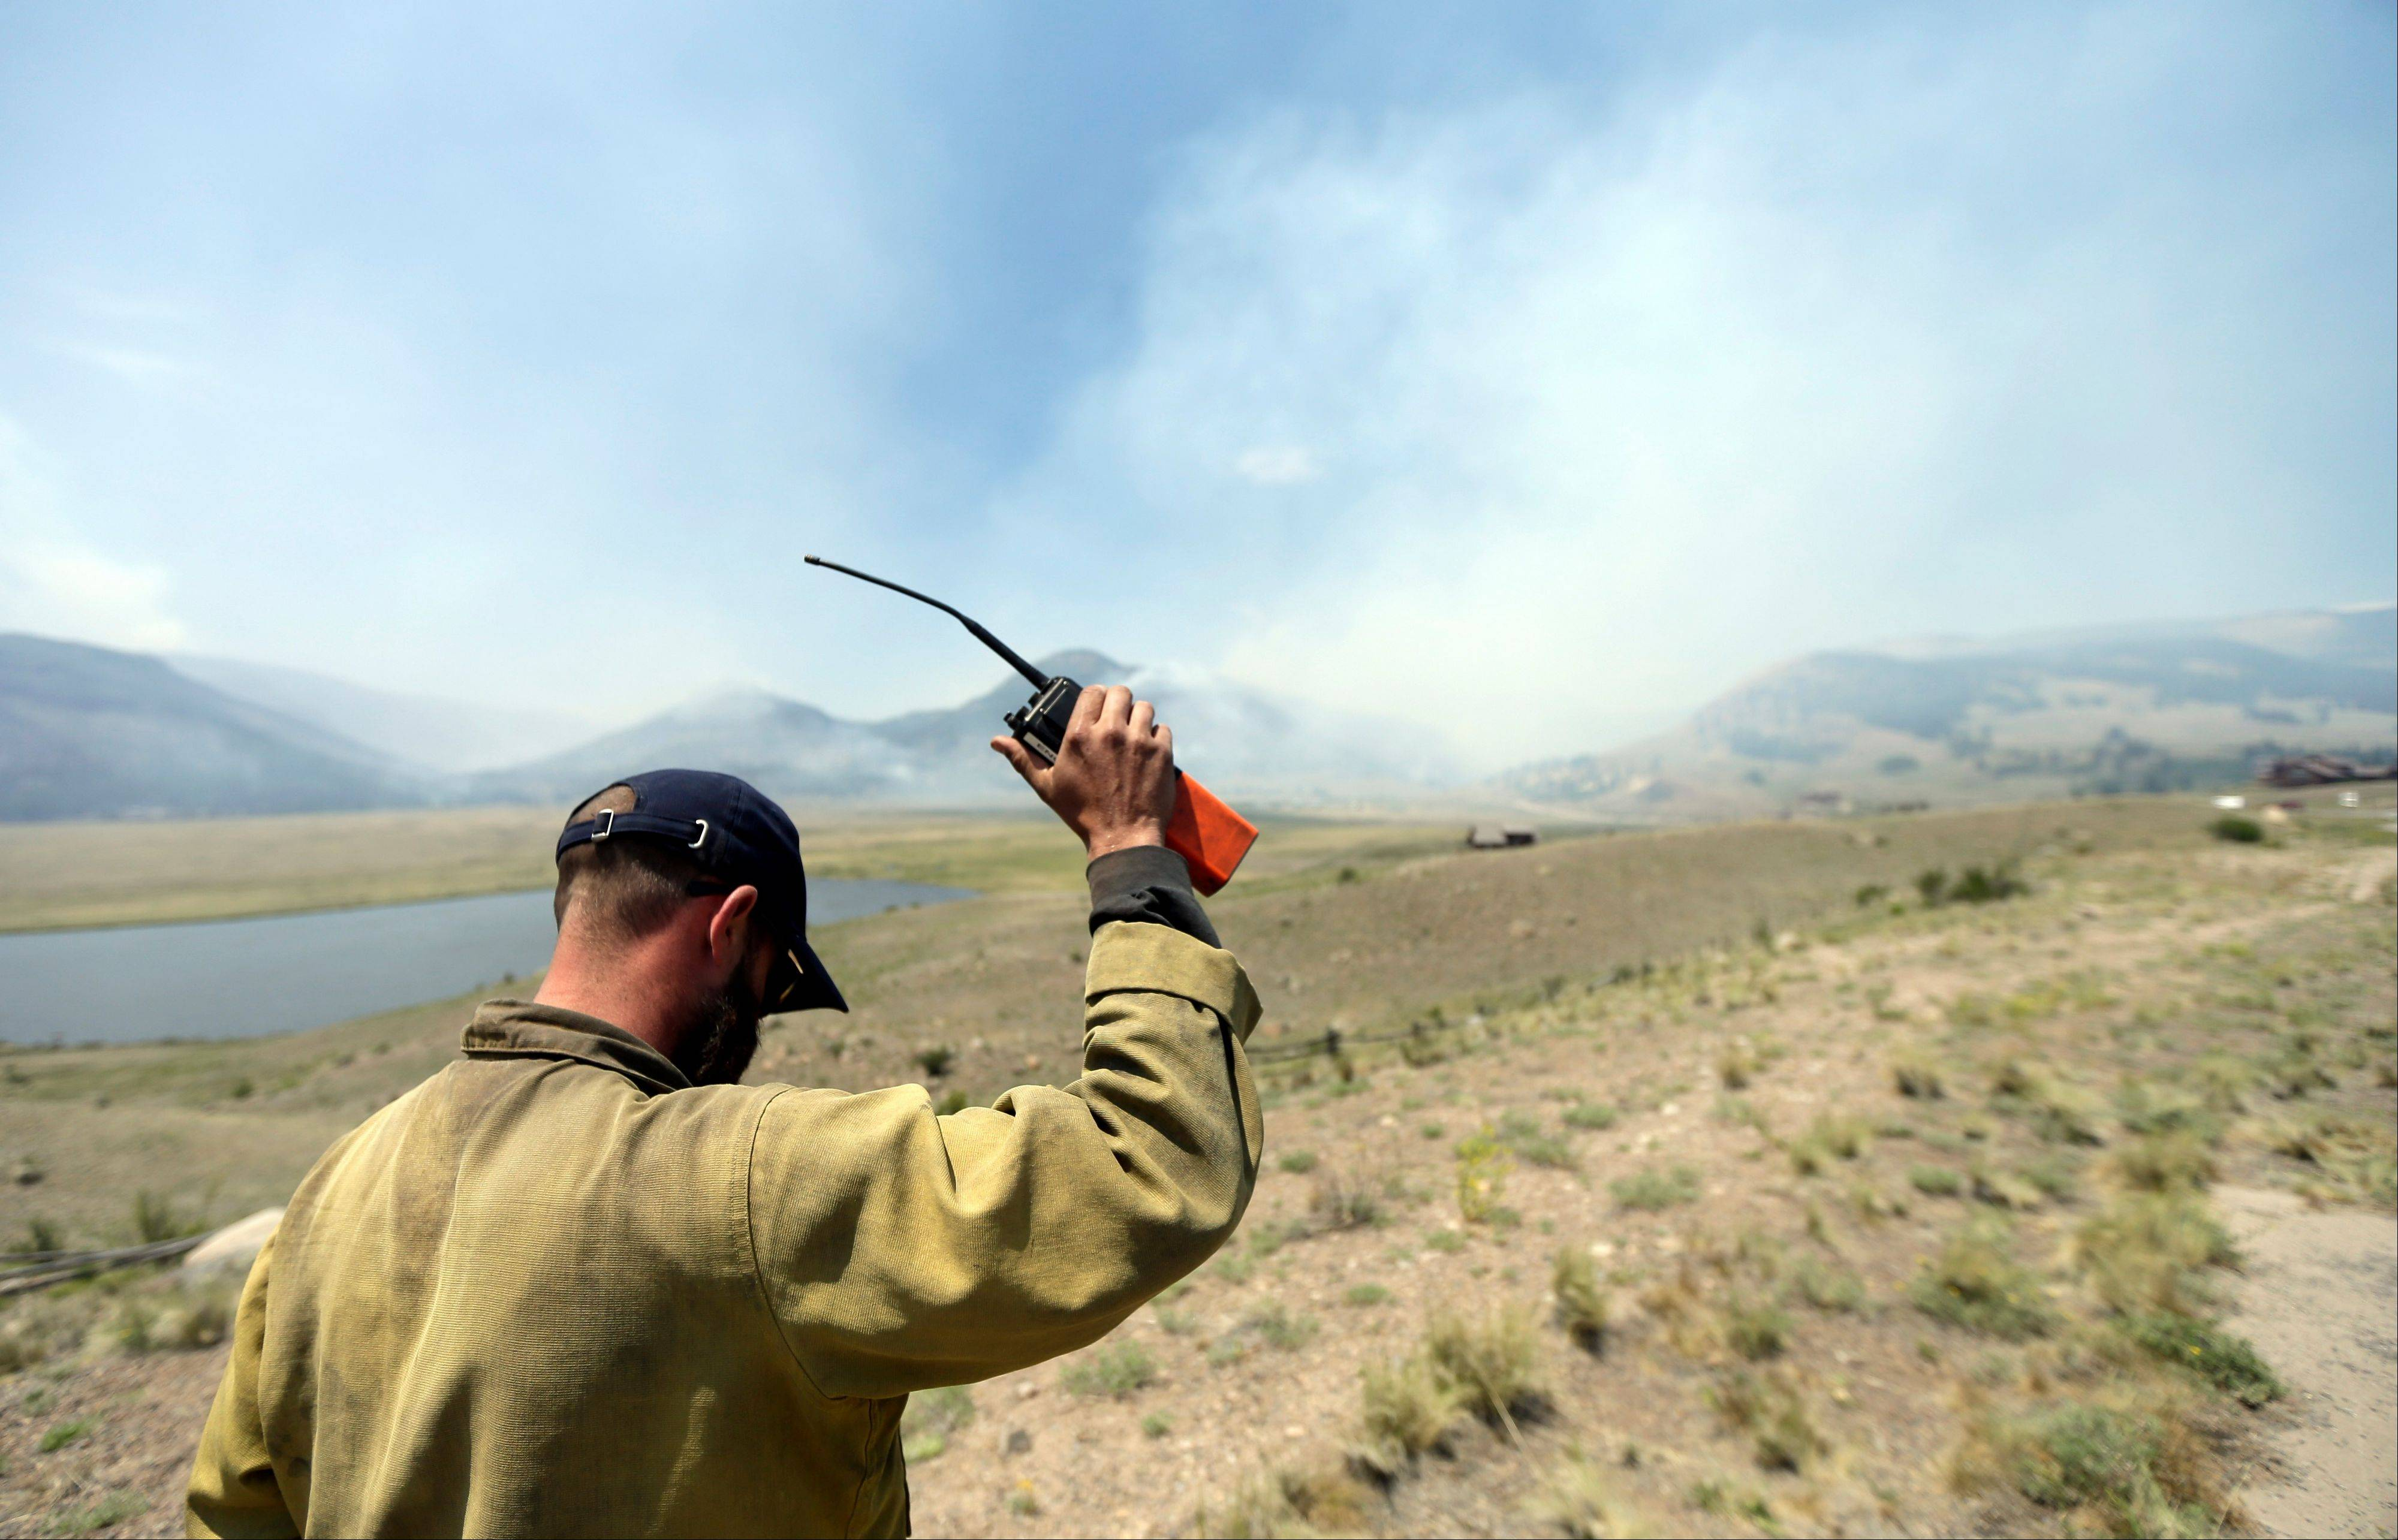 Idaho firefighter David Inskee holds his radio in the air for better reception as he keeps an eye on wildfires along highway 149 west of Creede, Colo., Monday, June 24, 2013.